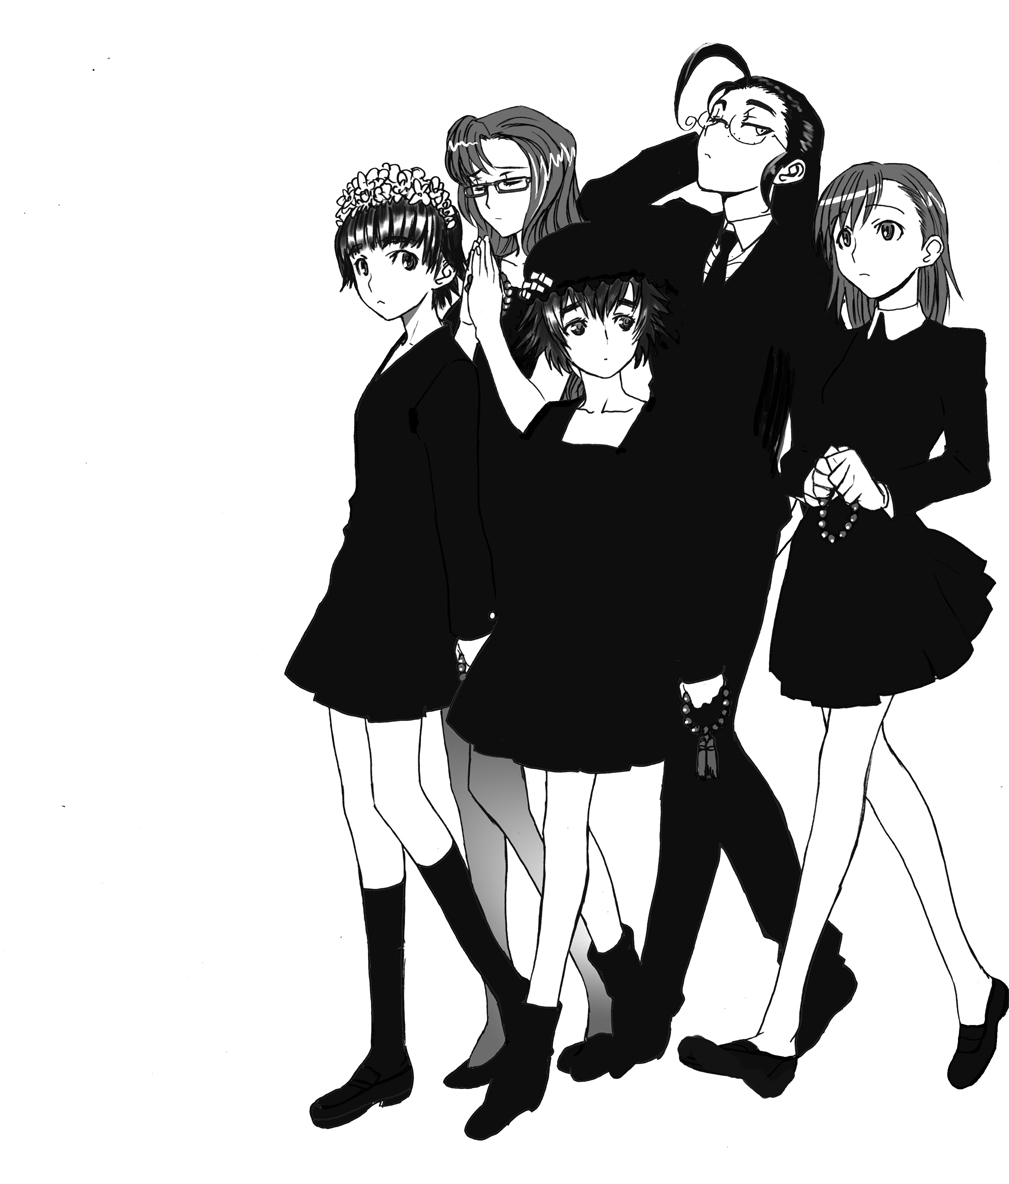 5girls ahoge character_request crossover dress flower formal freckles funeral glasses hair_flower hair_ornament hat head_wreath hellsing hiroe_rei kiryuu_moeka legs misaka_mikoto monochrome necktie pantyhose rip_van_winkle shiina_mayuri short_hair skirt_suit steins;gate suit to_aru_kagaku_no_railgun to_aru_majutsu_no_index uiharu_kazari